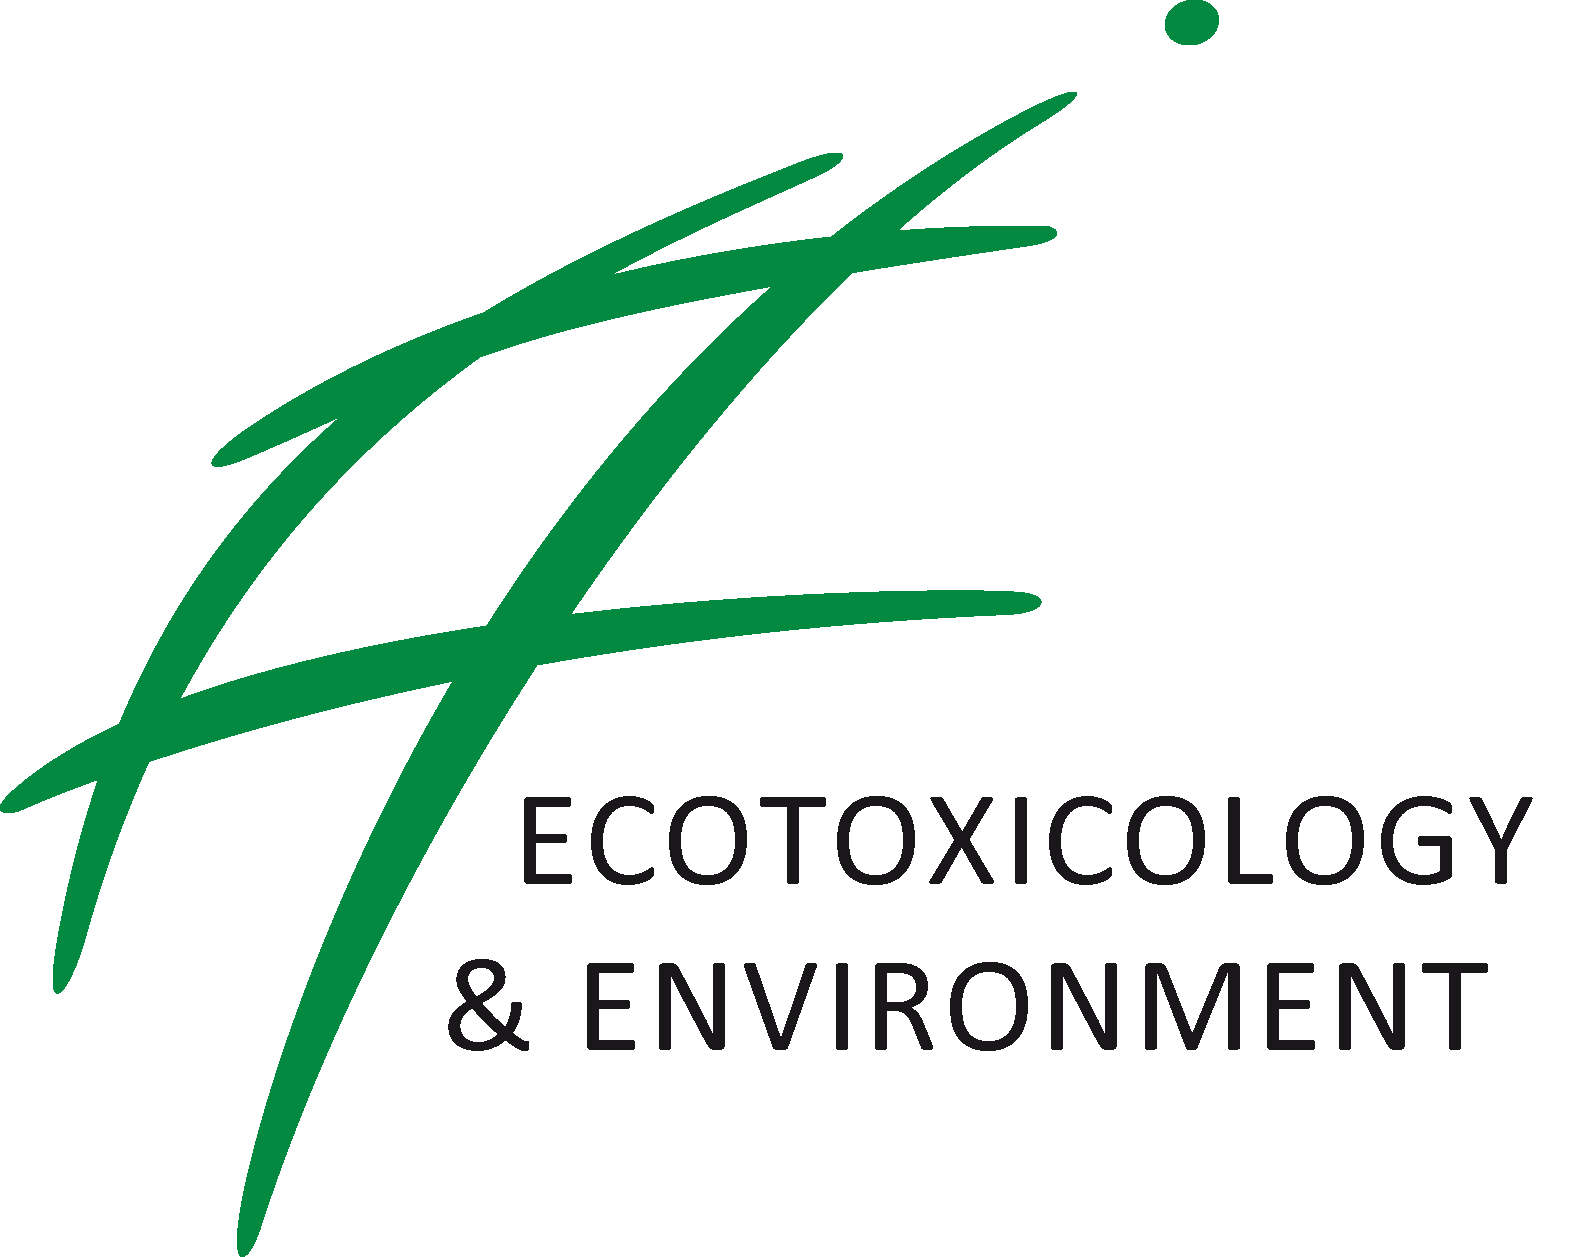 Ecotoxicology & Environment